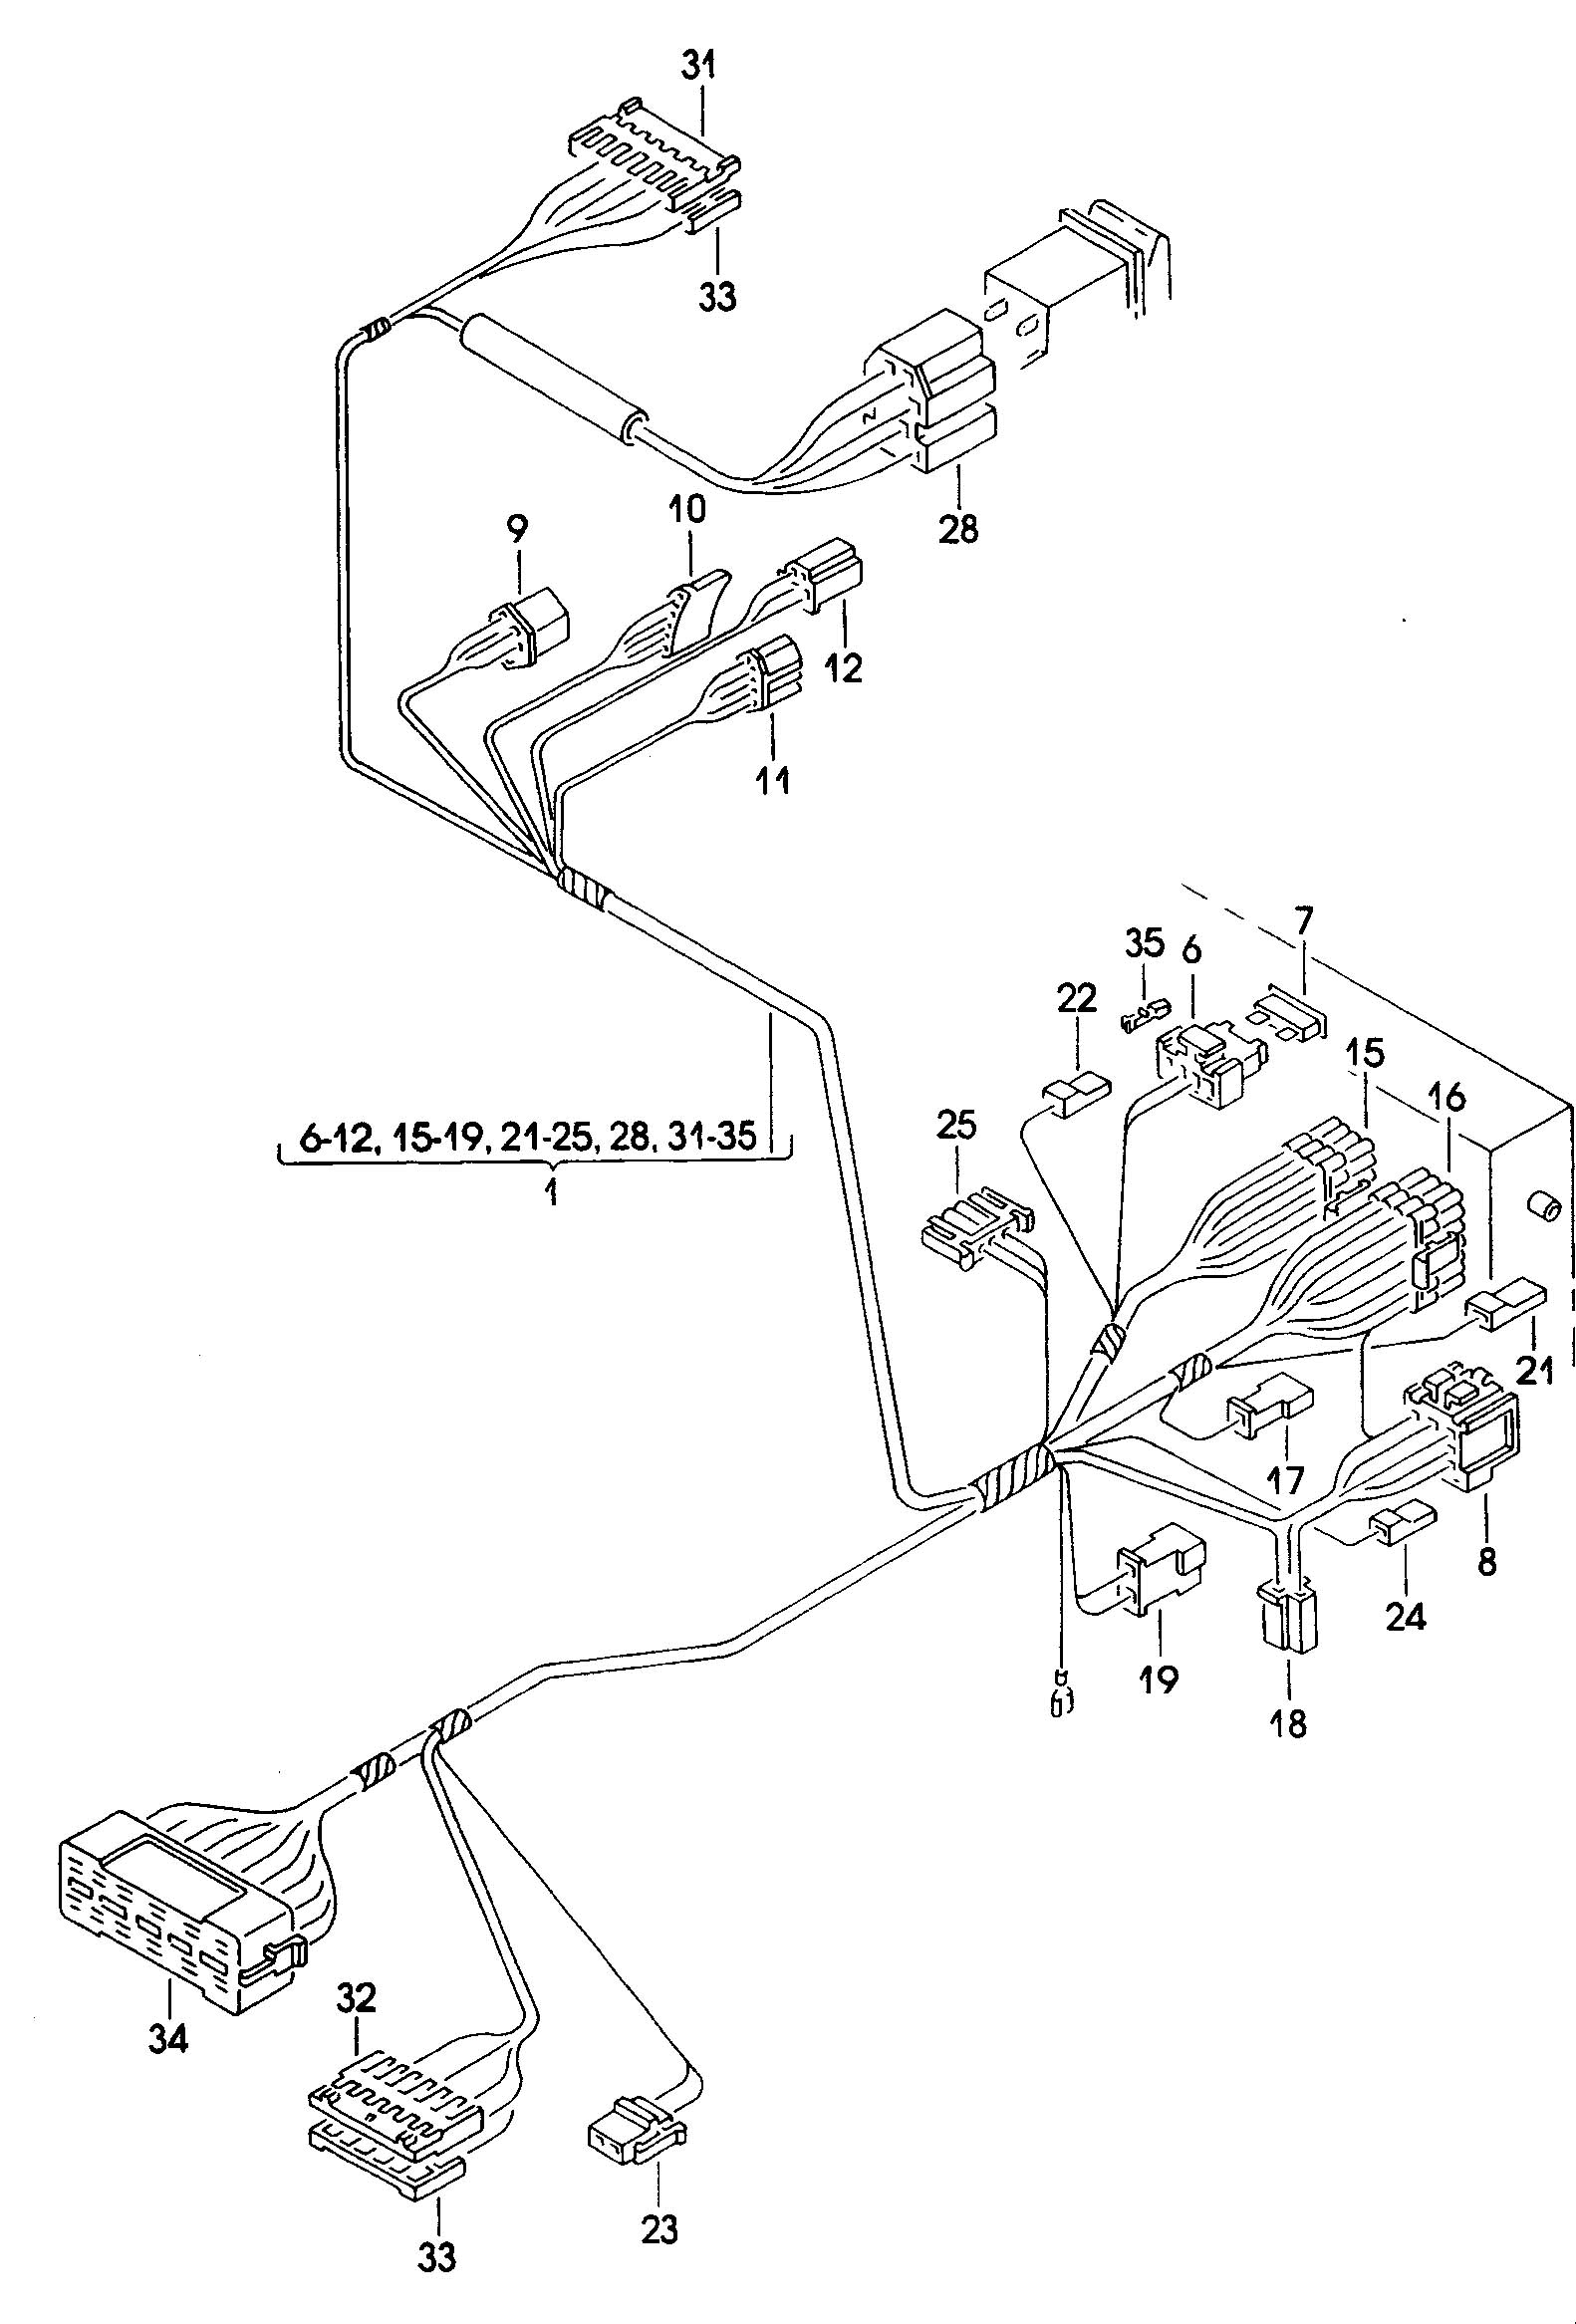 Vw Beetle Ac Diagram Great Design Of Wiring 1999 Volkswagen Engine Http Wwwjimellisvwpartscom 2006 Passat Air Conditioning 1967 1974